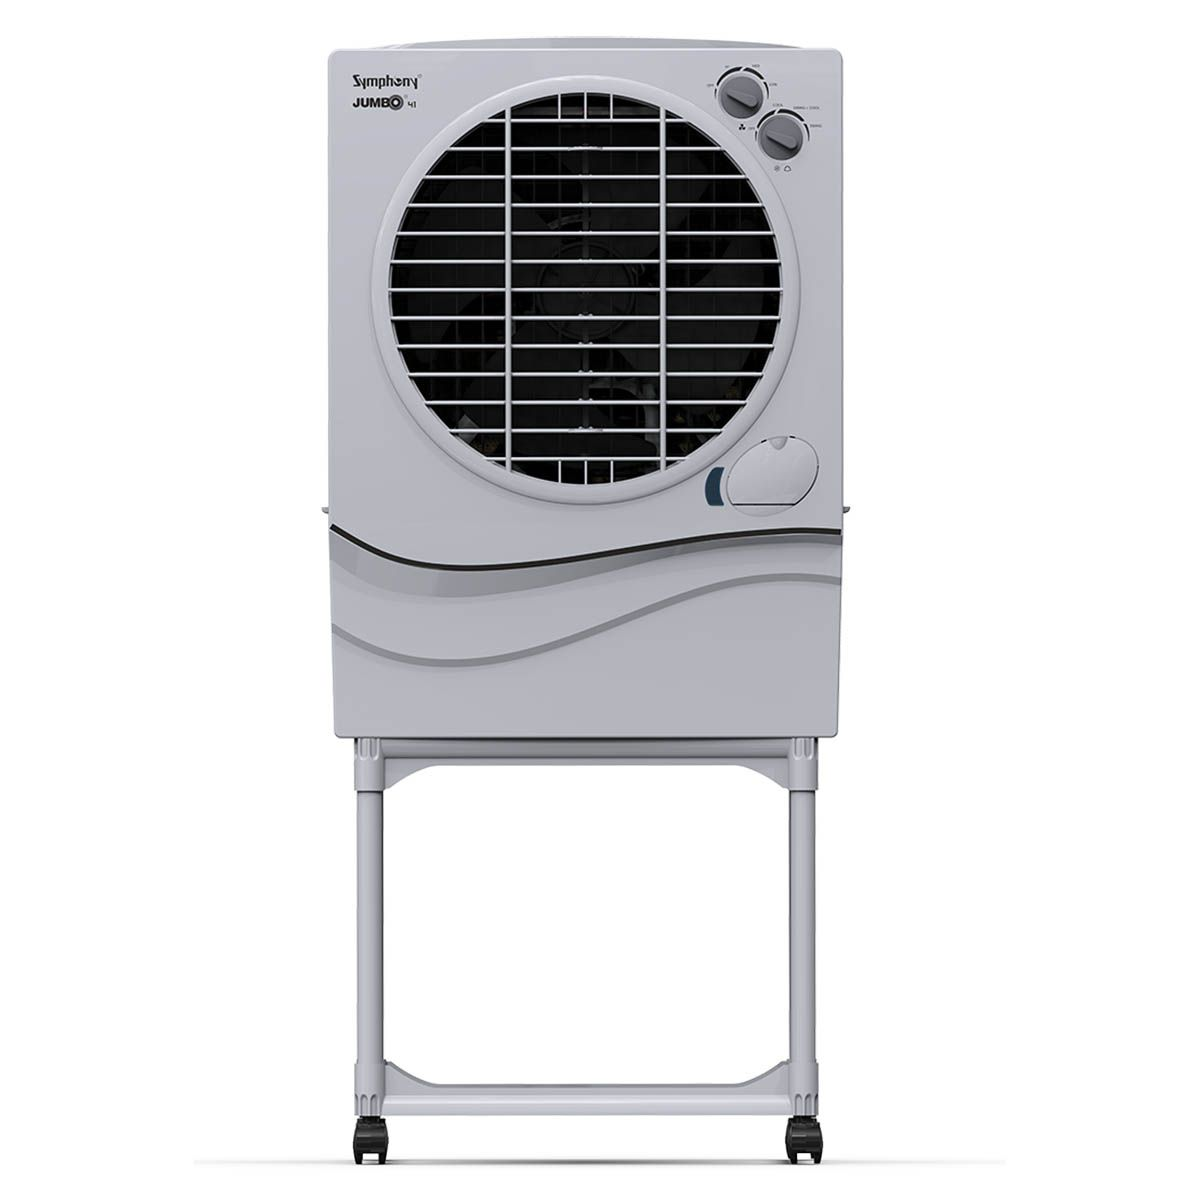 Symphony Jumbo 41 Desert Air Cooler 41-litres with Trolley